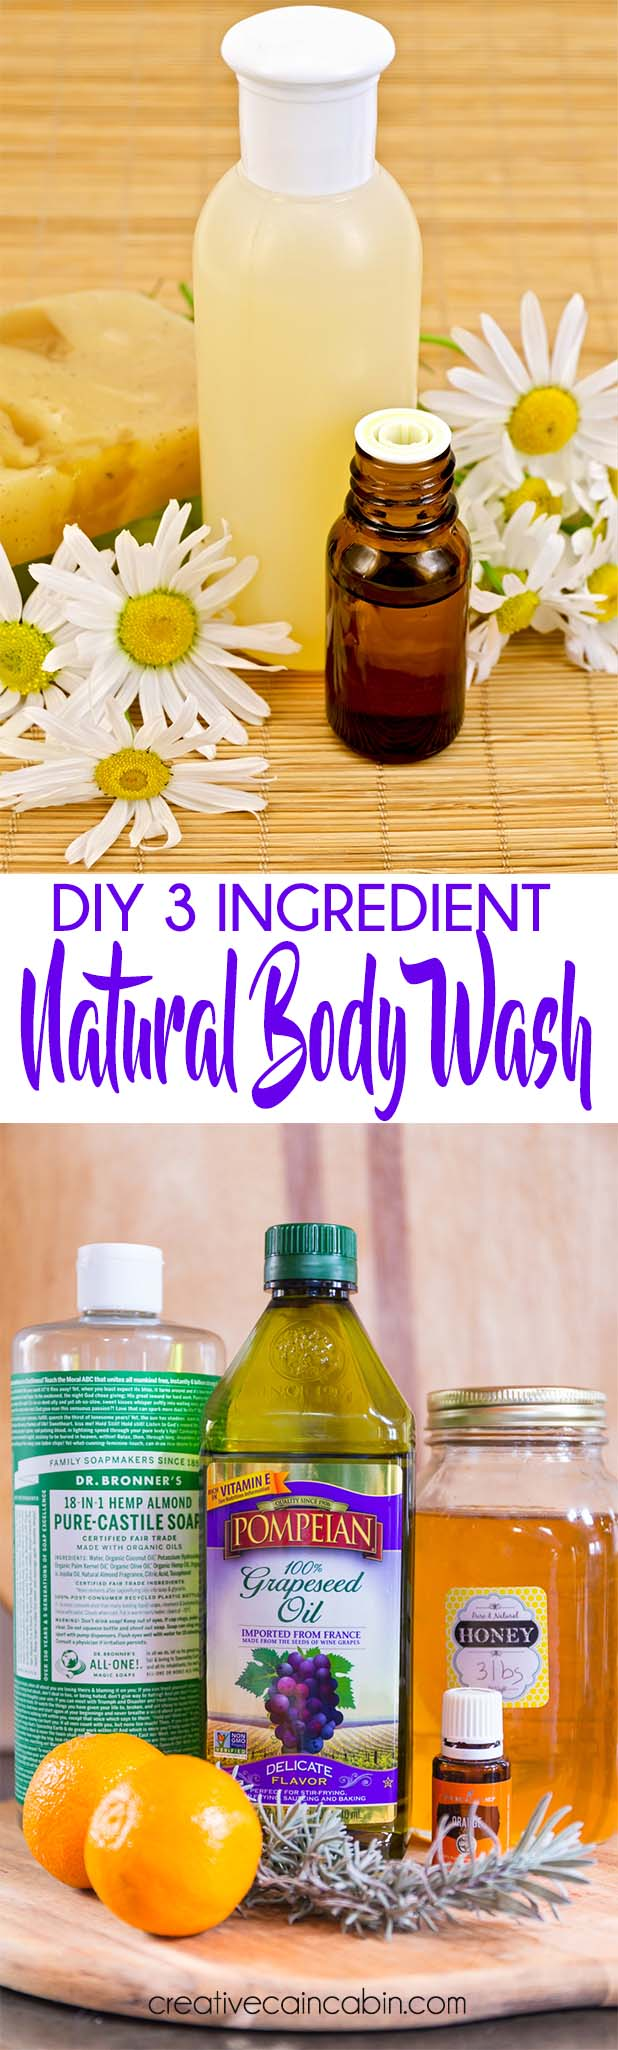 DIY Natural Essential Oil and Honey Body Wash 3 Ingredients With Essential Optional